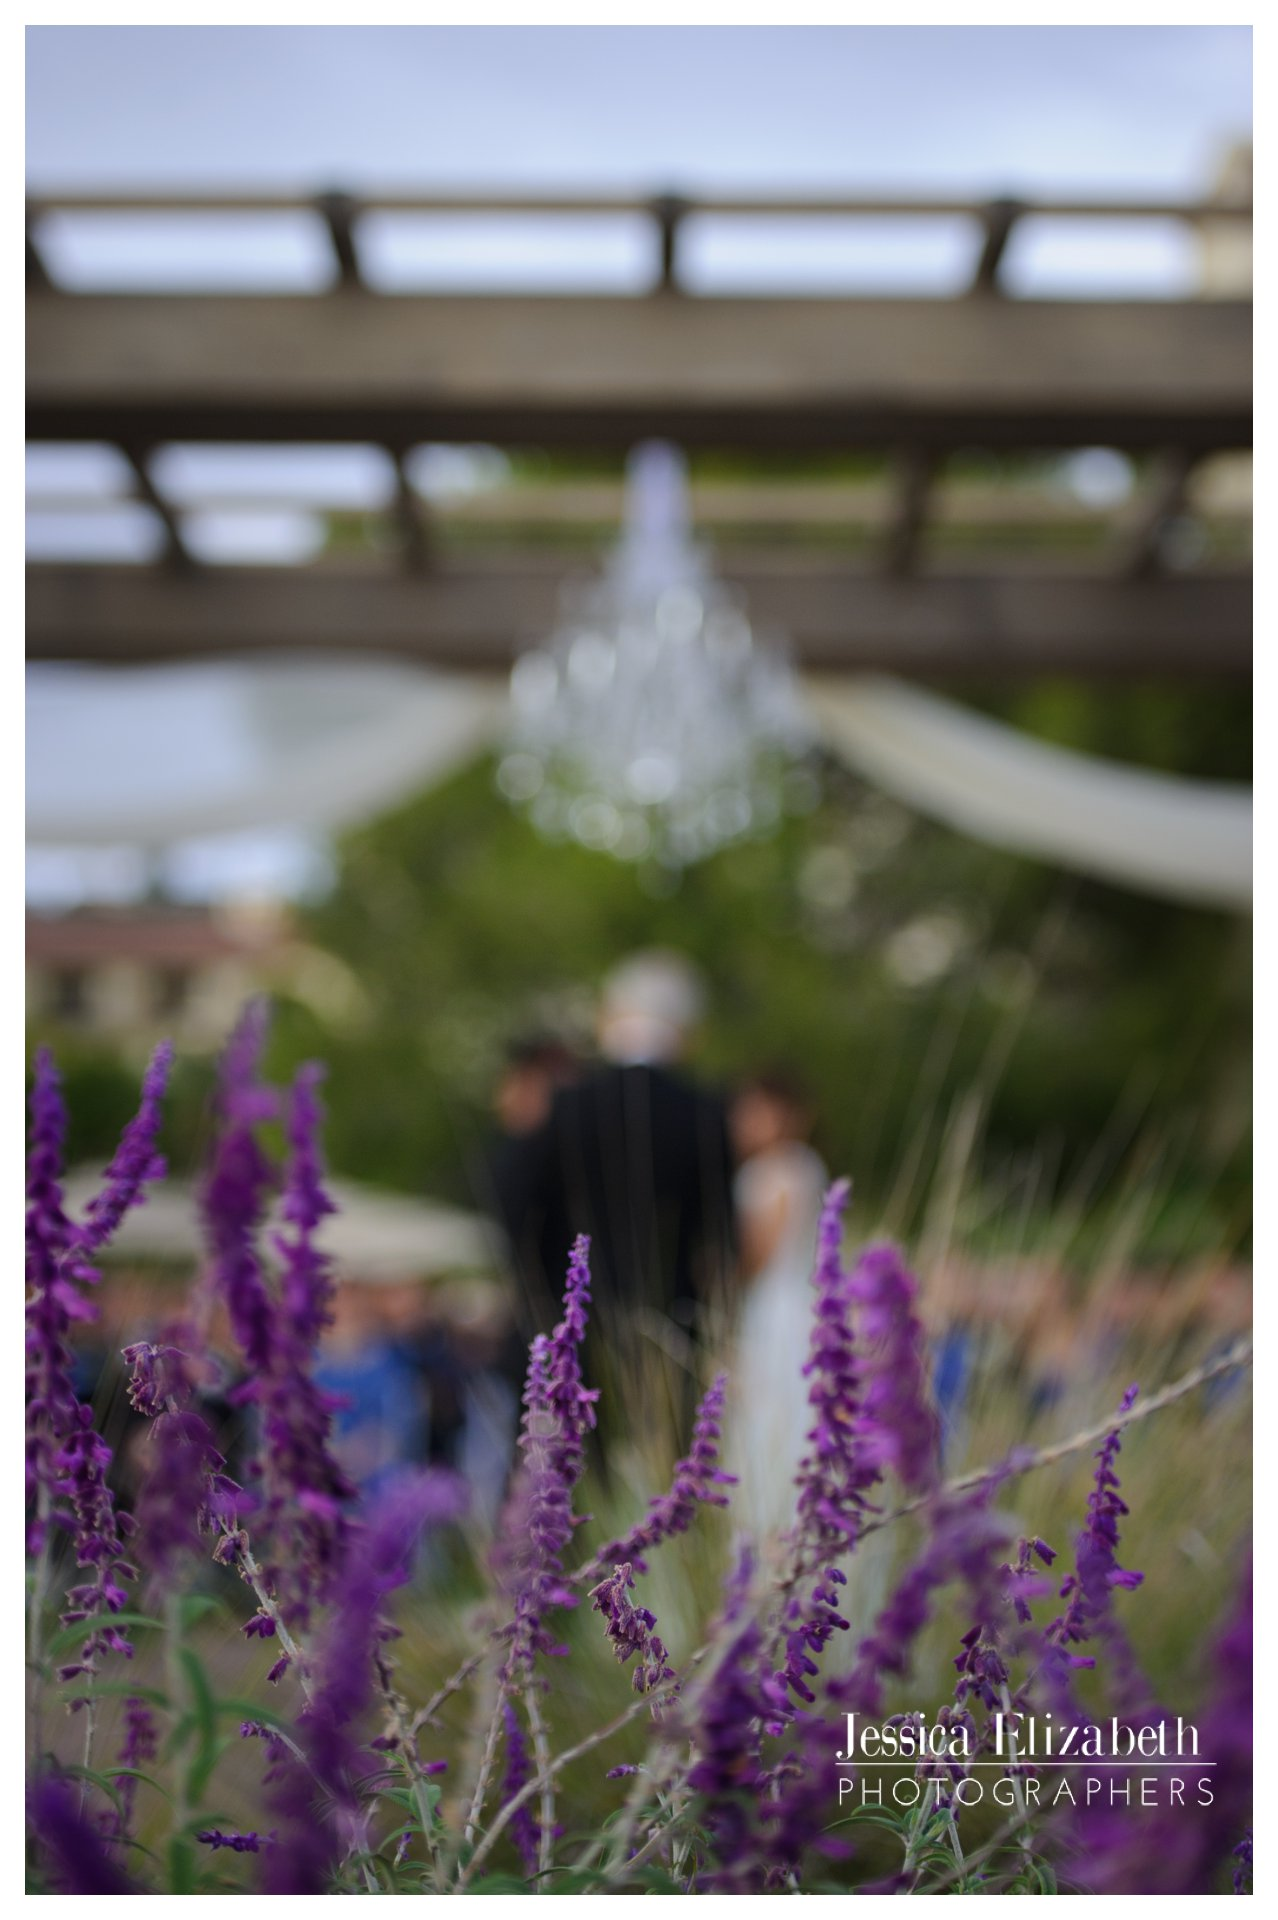 14-Terranea-Palos-Verdes-Wedding-Photography-by-Jessica-Elizabeth-w.jpg